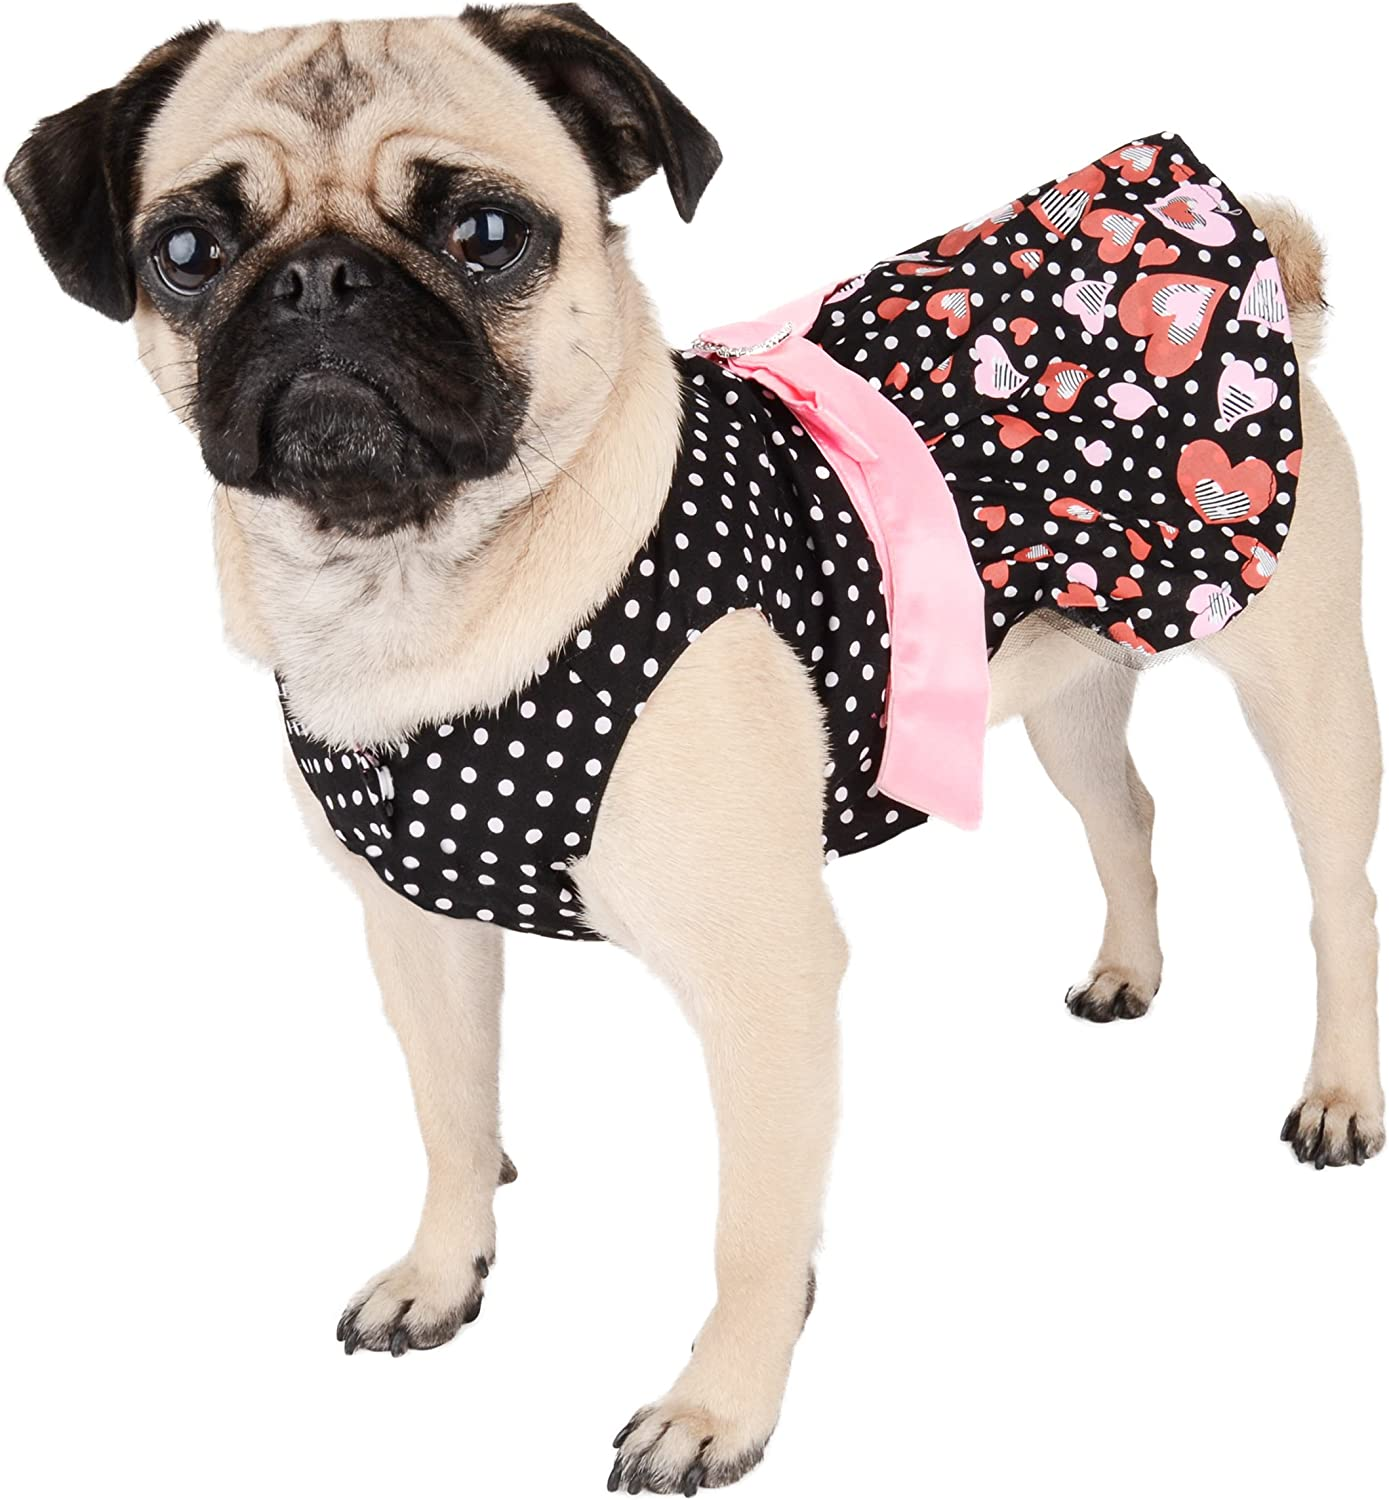 CueCue Pet CCPPlkDotHrtDressREDPNKS Polka Dot Hearts Dress with Removable Heart Bow, Black Red Pink